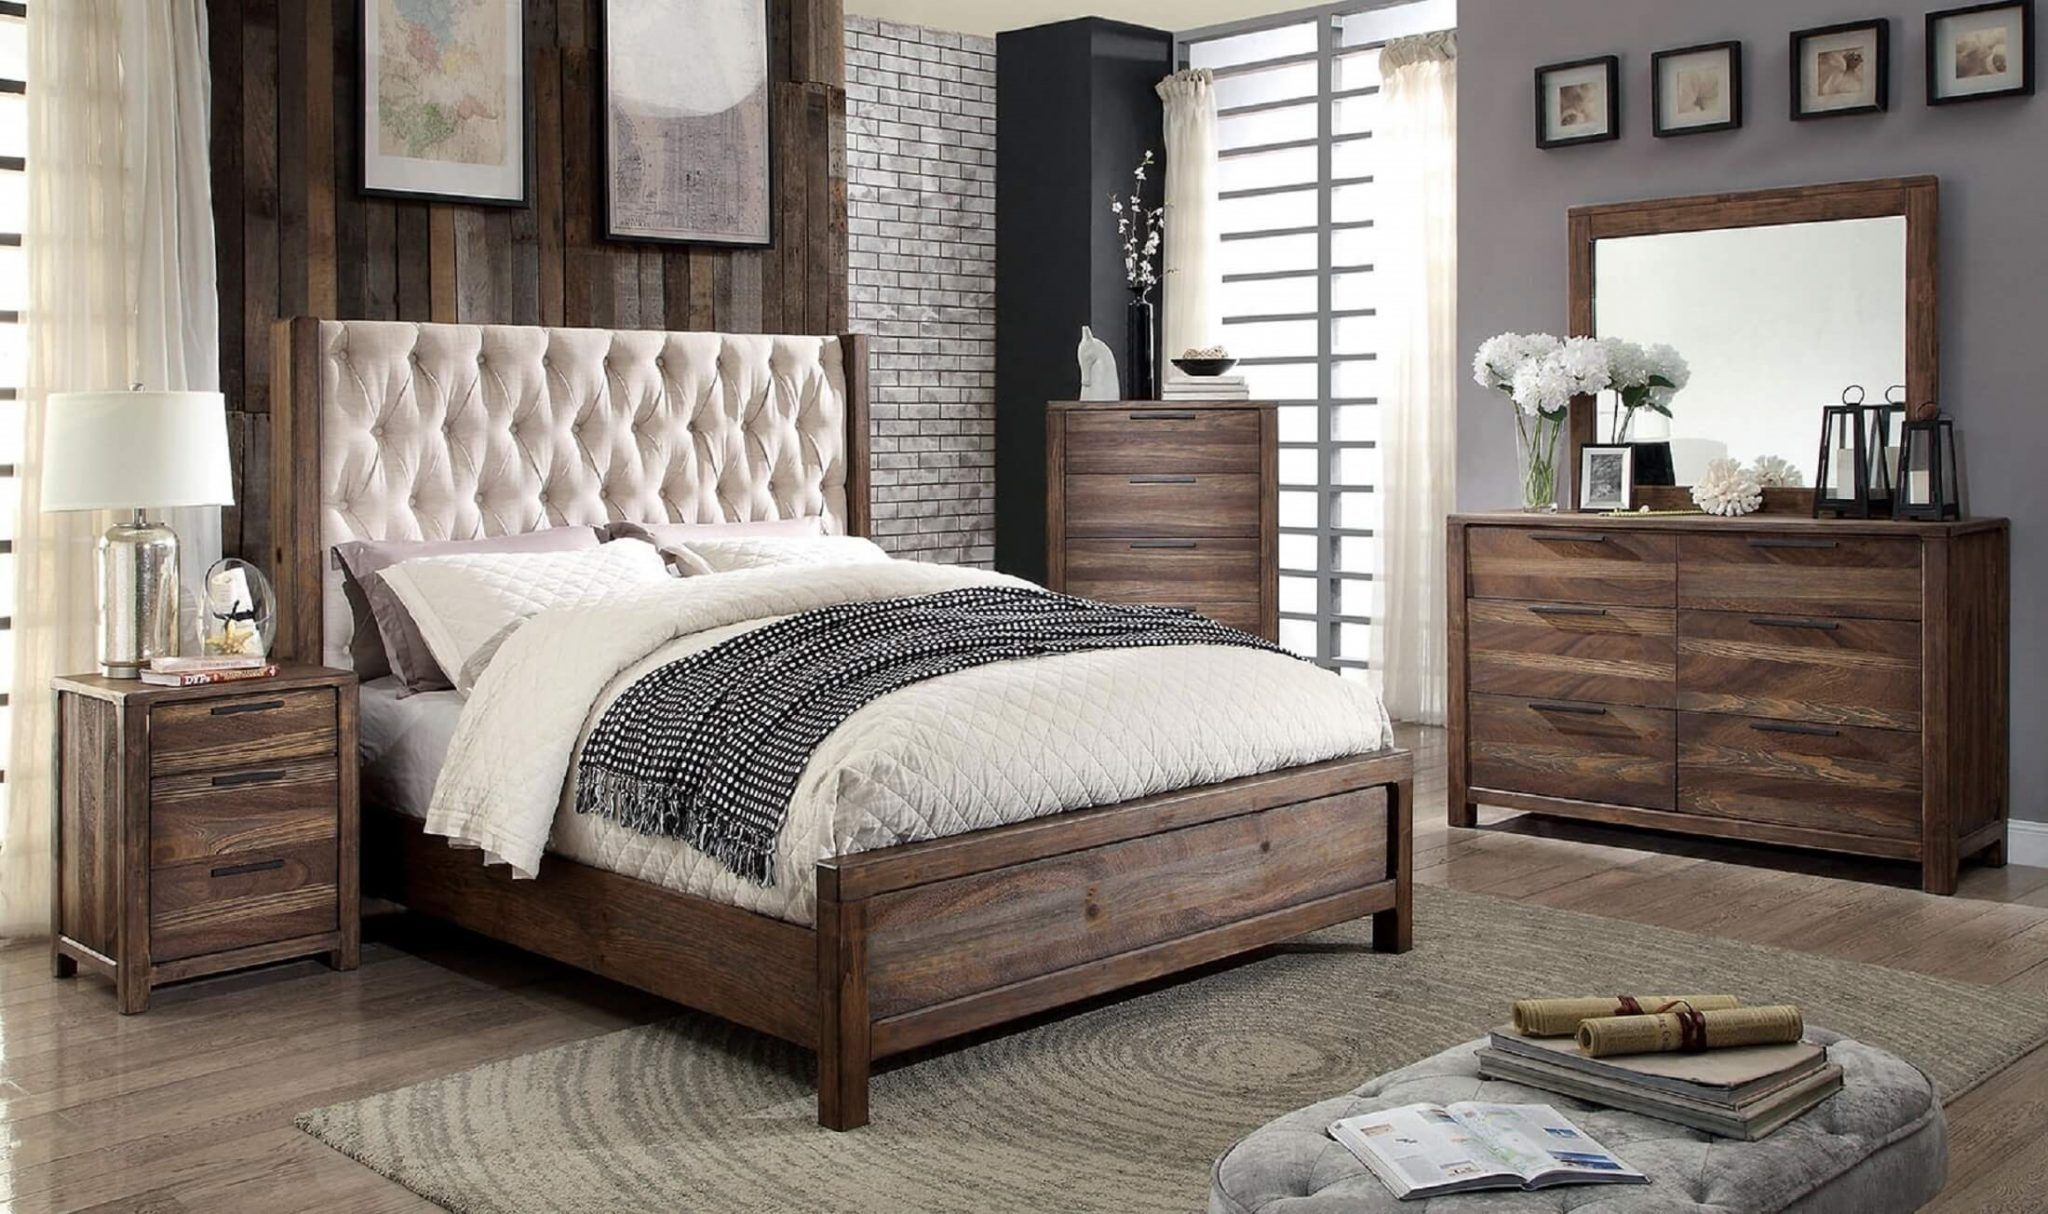 4 Piece Hutchinson Rustic Natural Bedroom Set